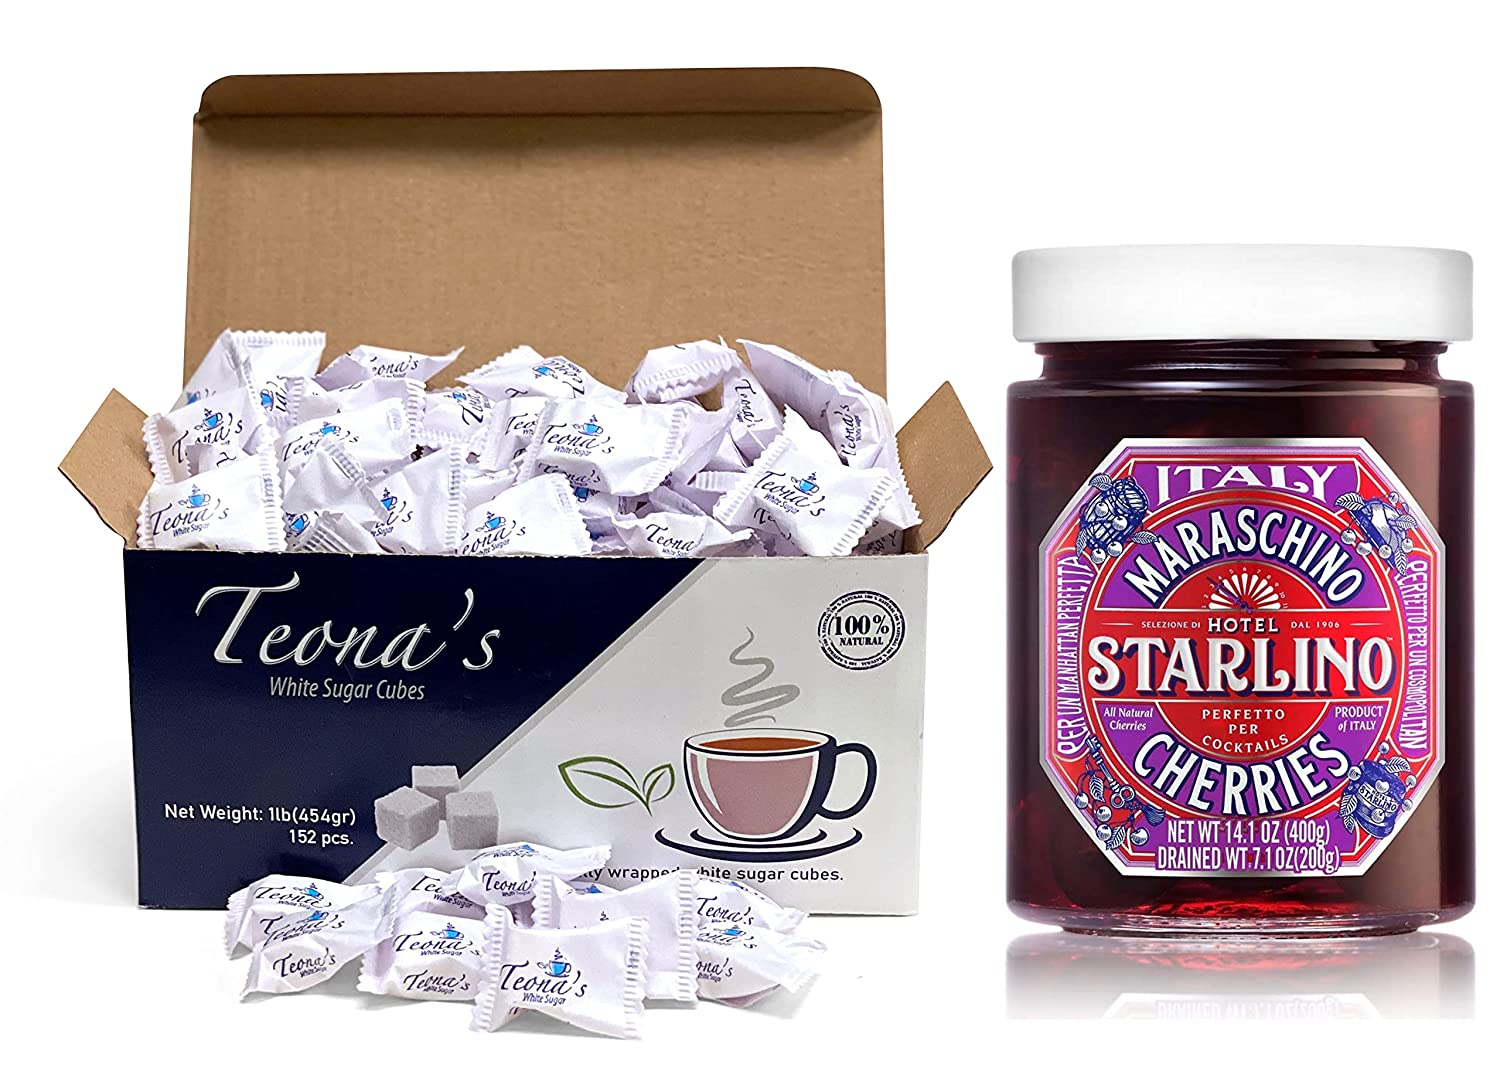 Teona's White Sugar Cubes & Maraschino Cherries Pack - 76 White Sugar Packets for Coffee, Tea, Food Service - 400g Pitted Maraschino Cherries with Stems Removed, Organic Fruits for Making Cocktails